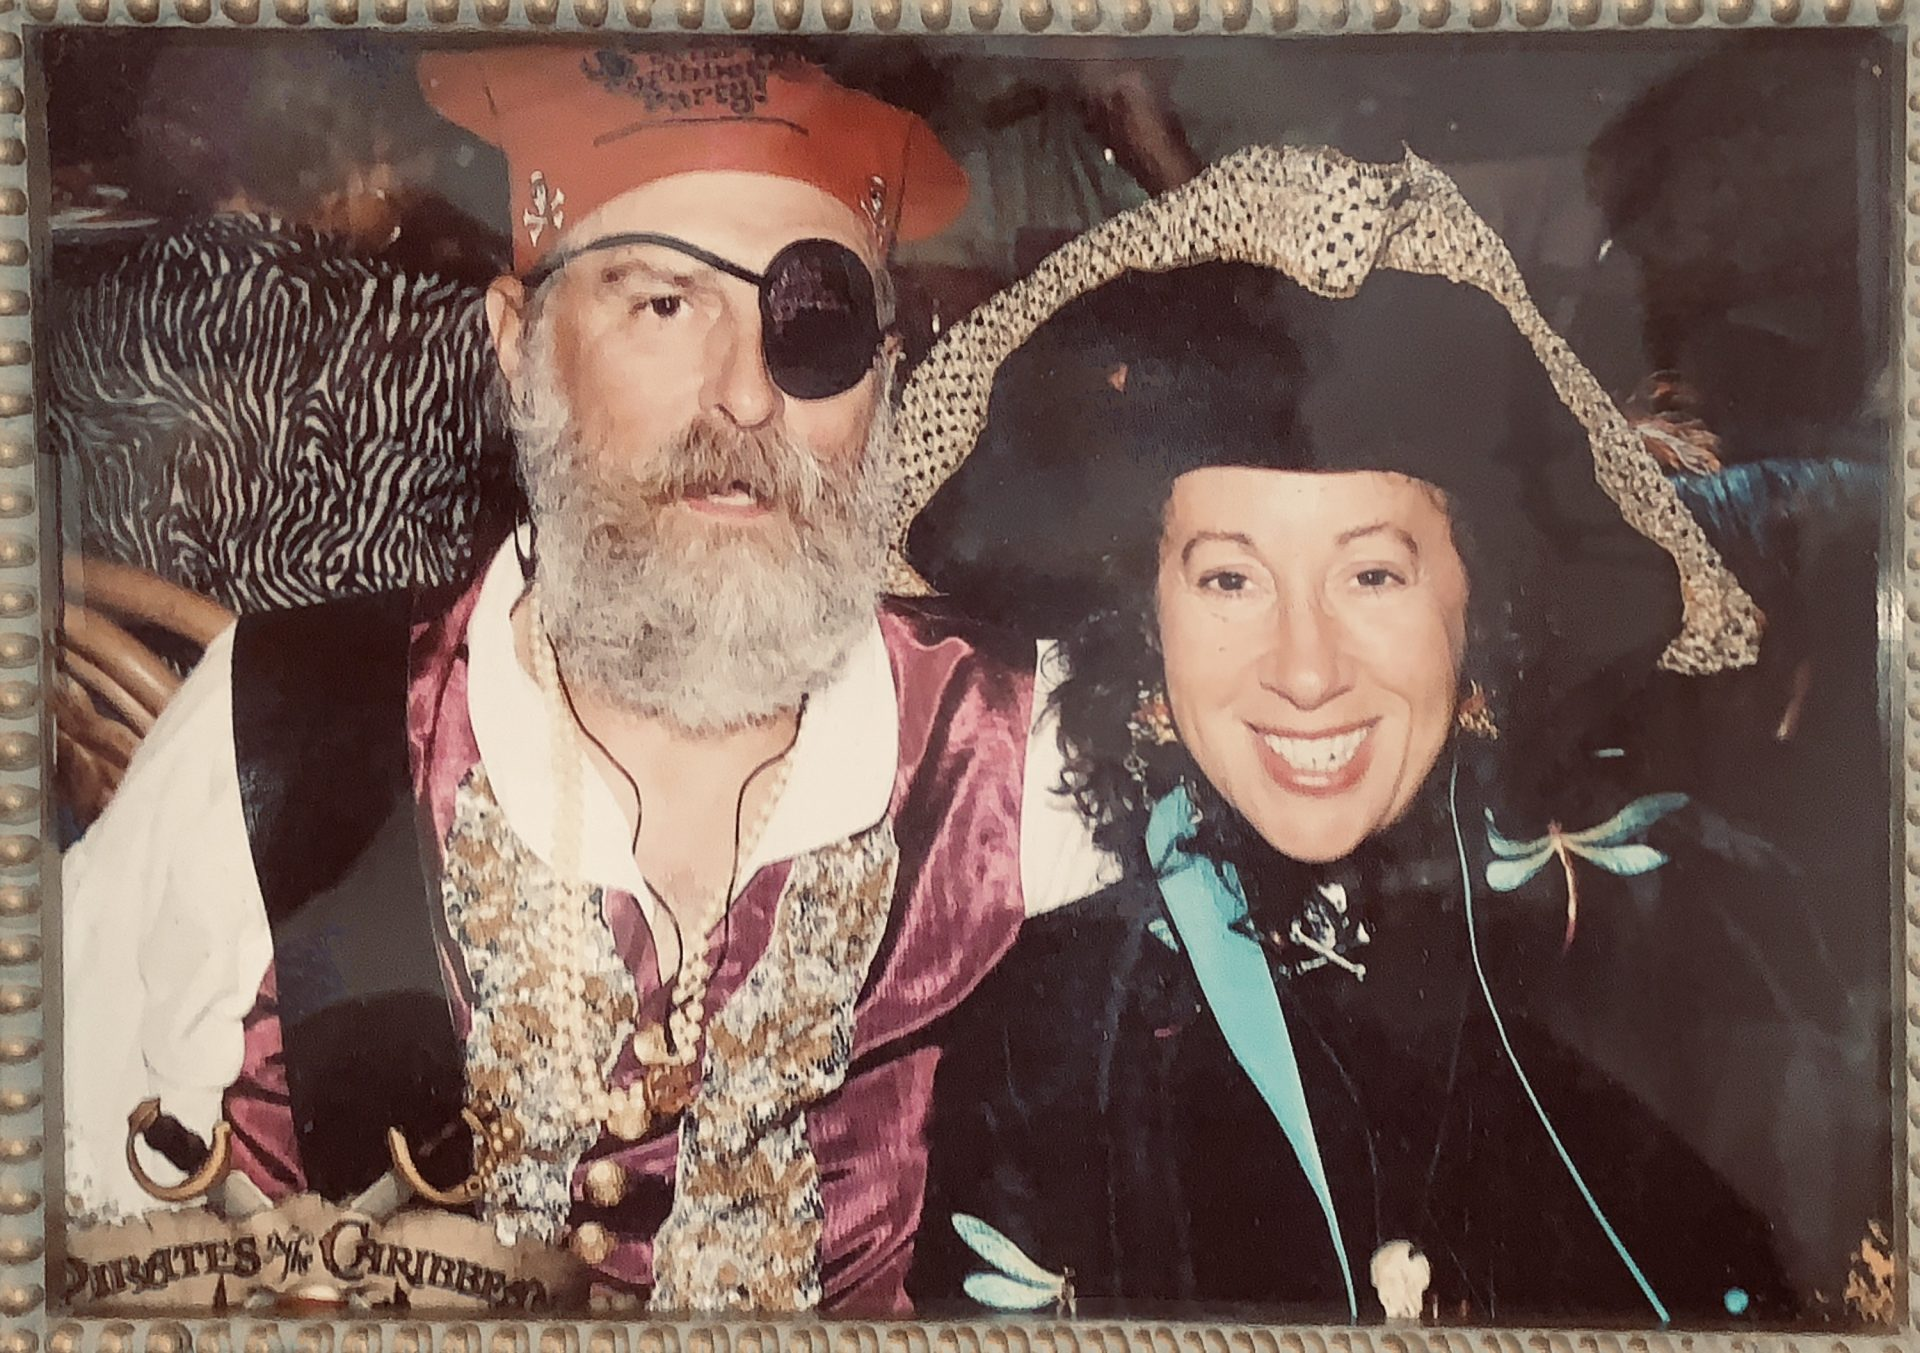 As pirates on the only cruise we ever took together.